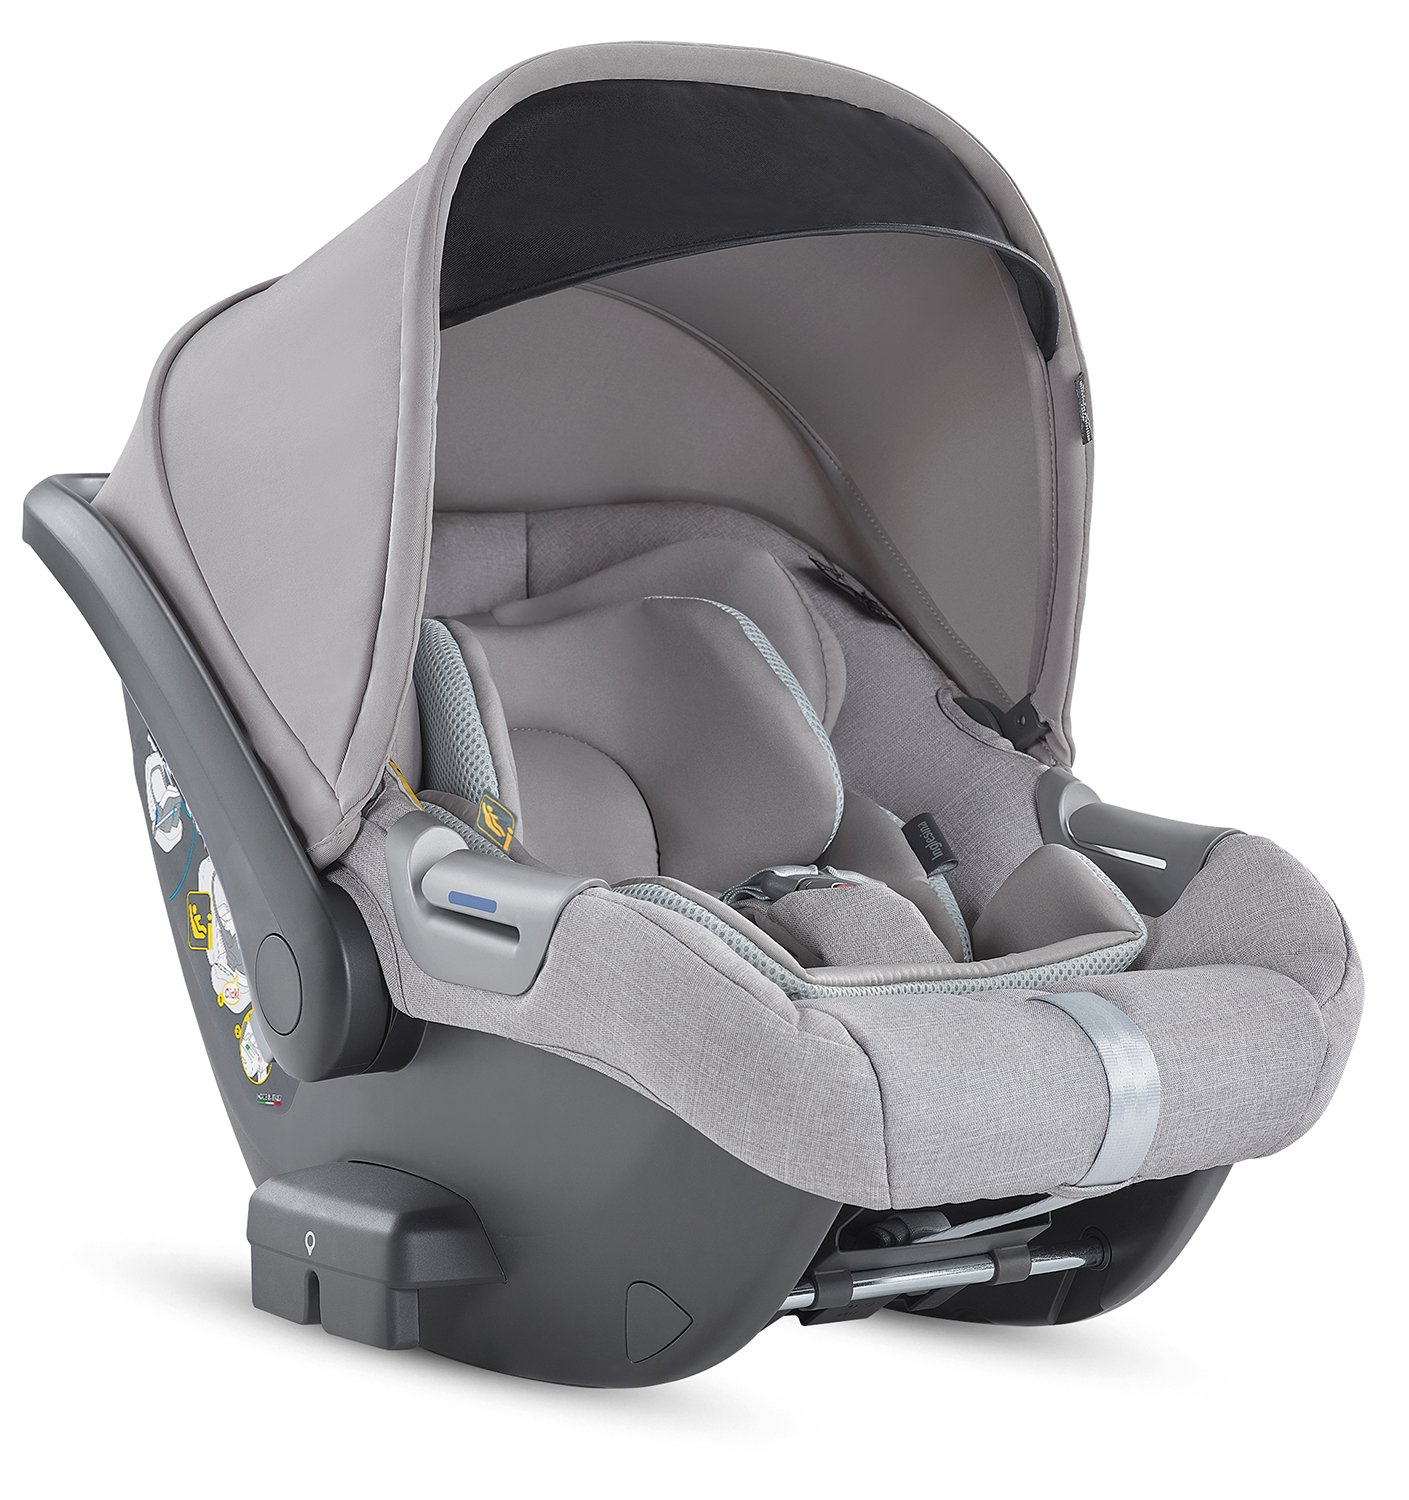 How To Choose The Best Car Seat For A Car